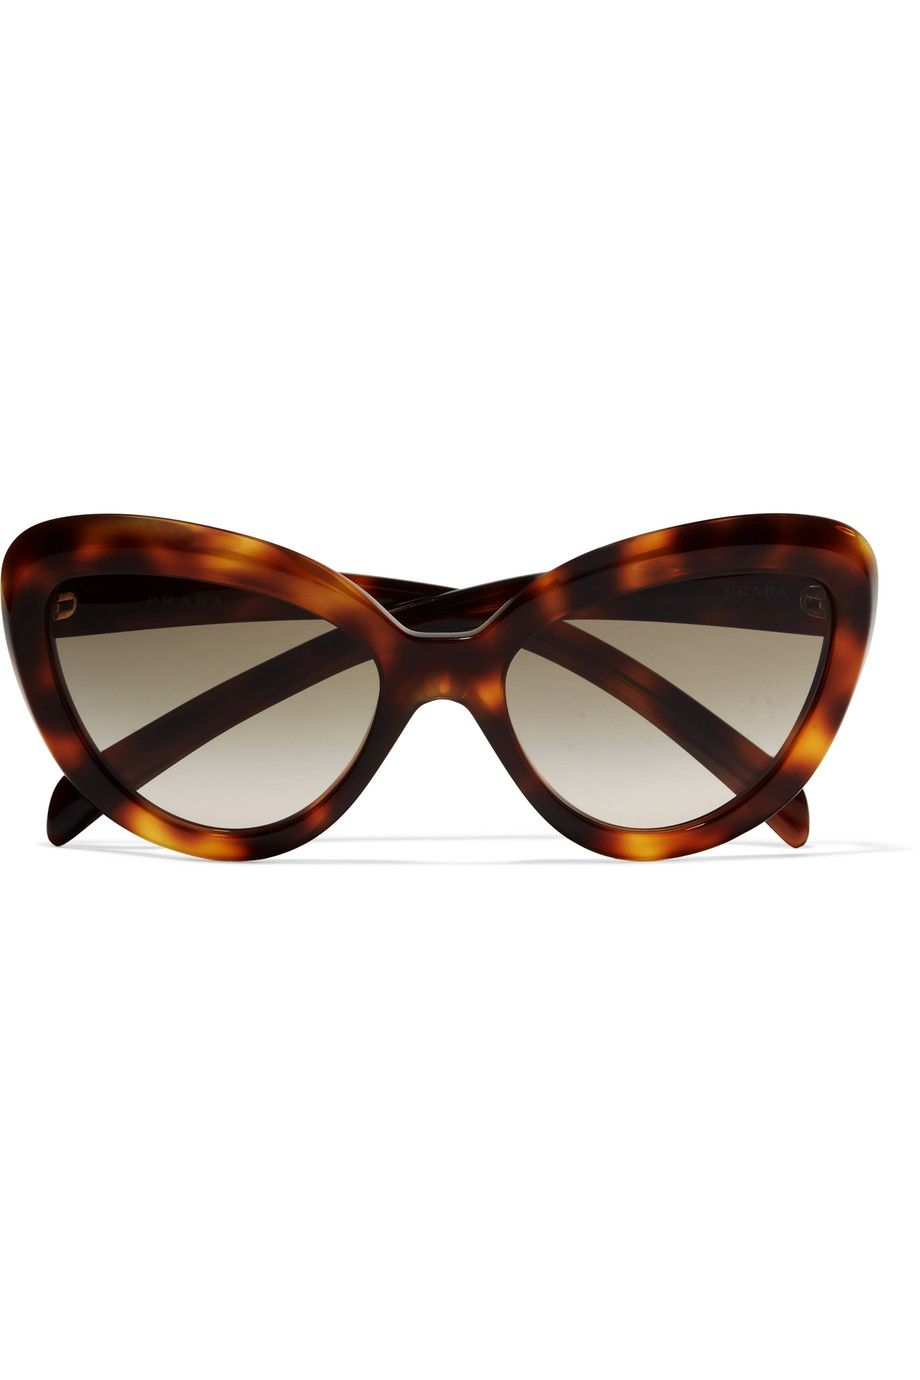 207884e65d ... discount code for shop on sale prada cat eye acetate sunglasses. browse  other discount 801cc ...